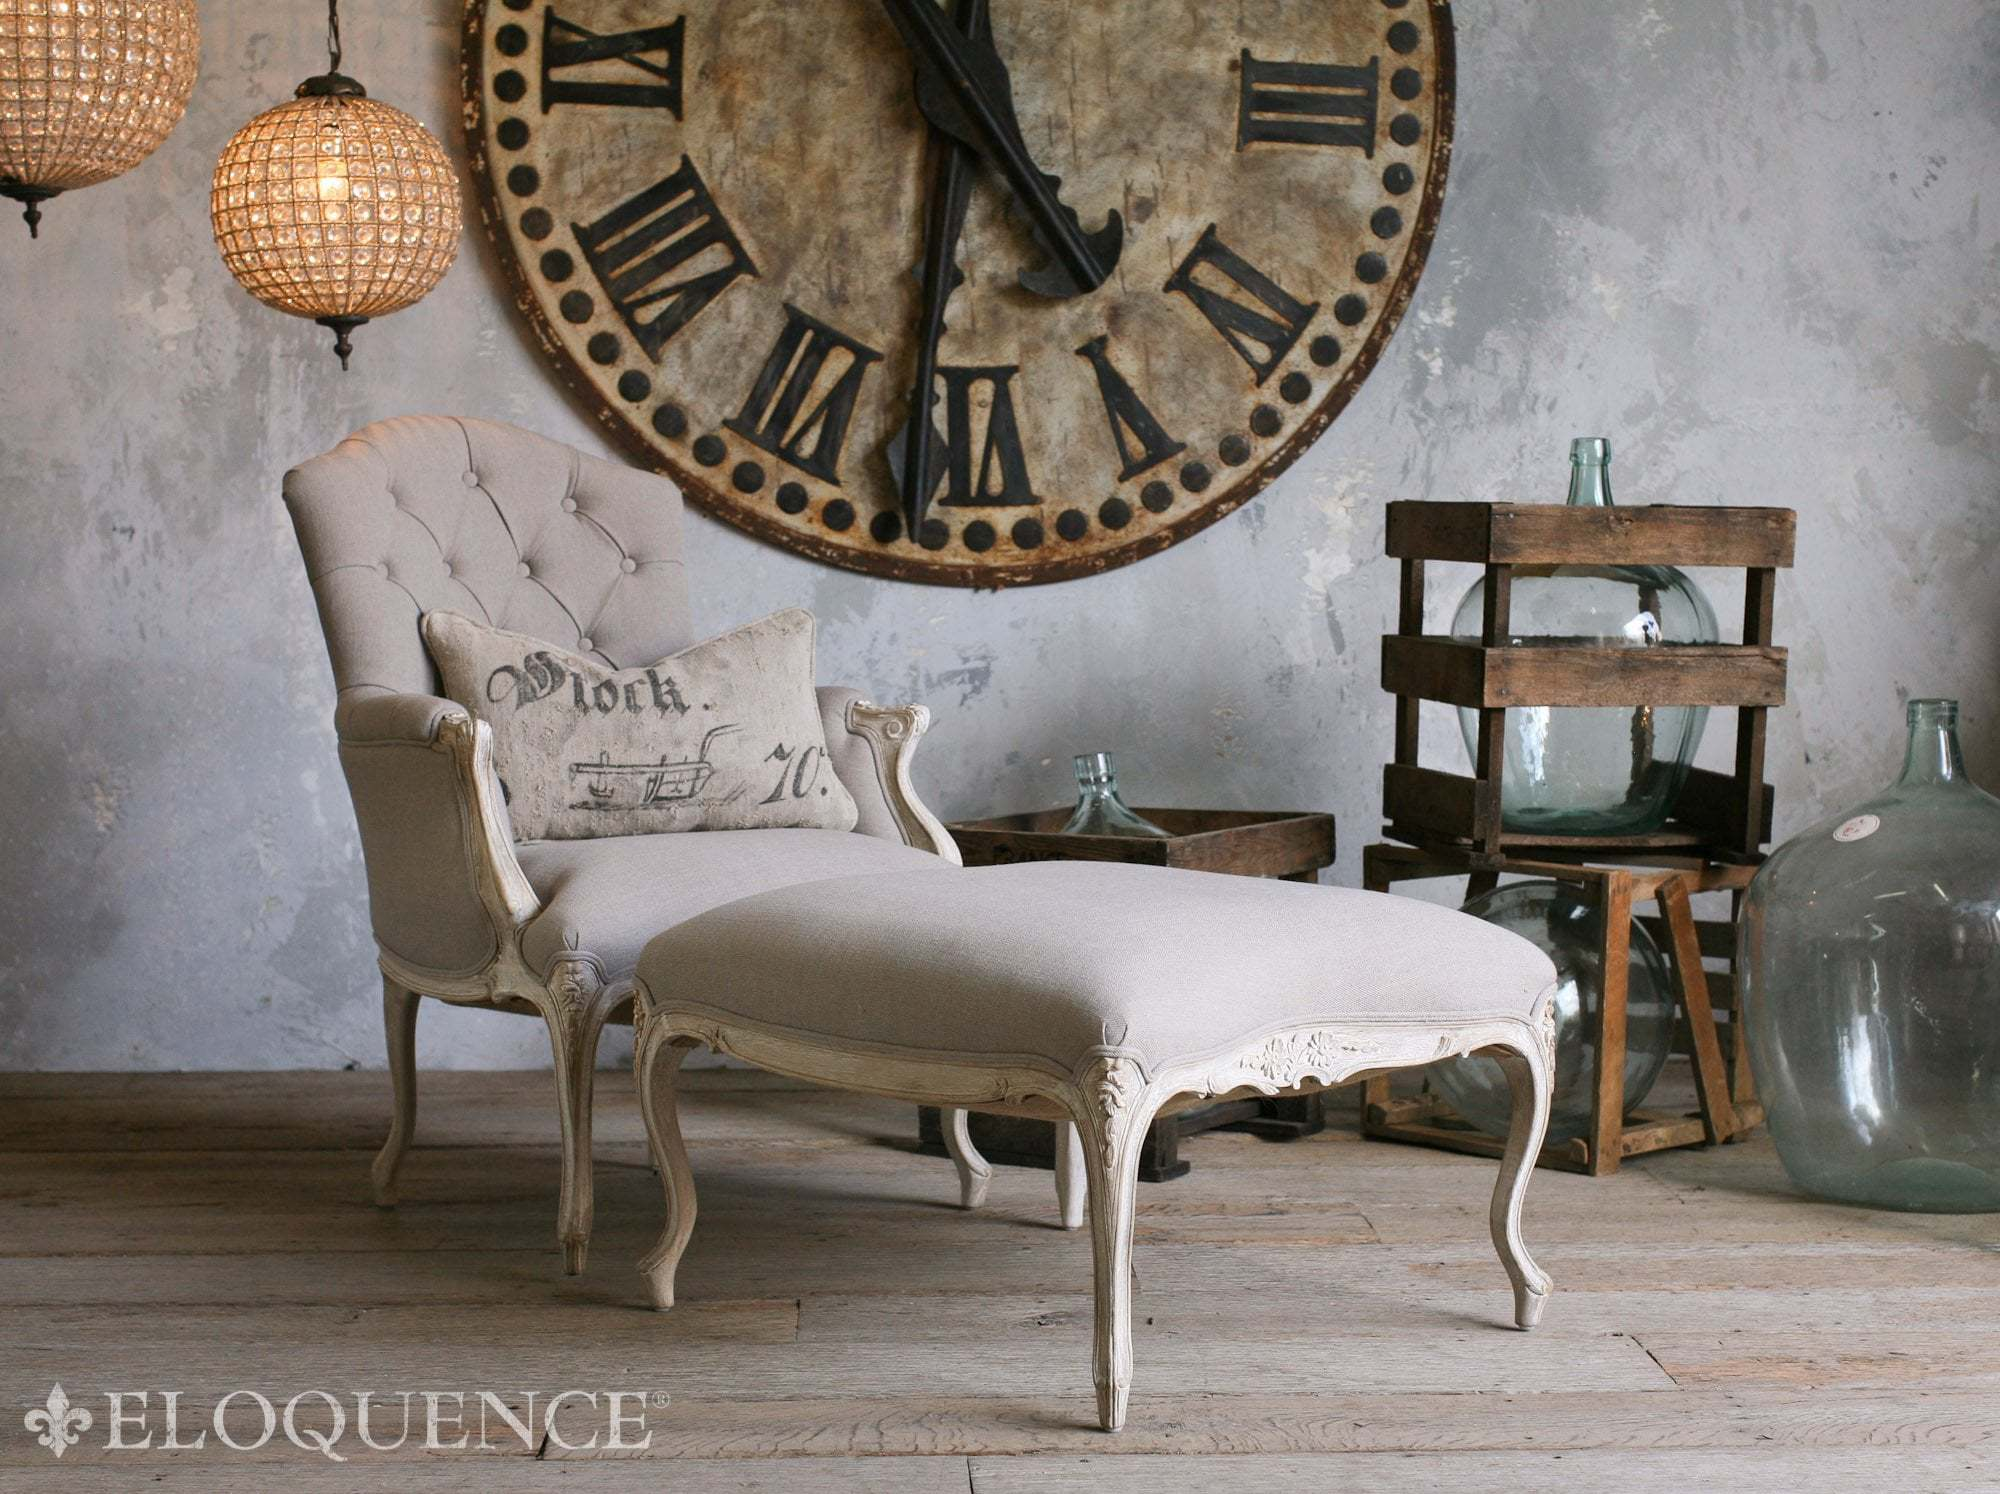 Get 'The Inherited Look' Decorating Style With Antique